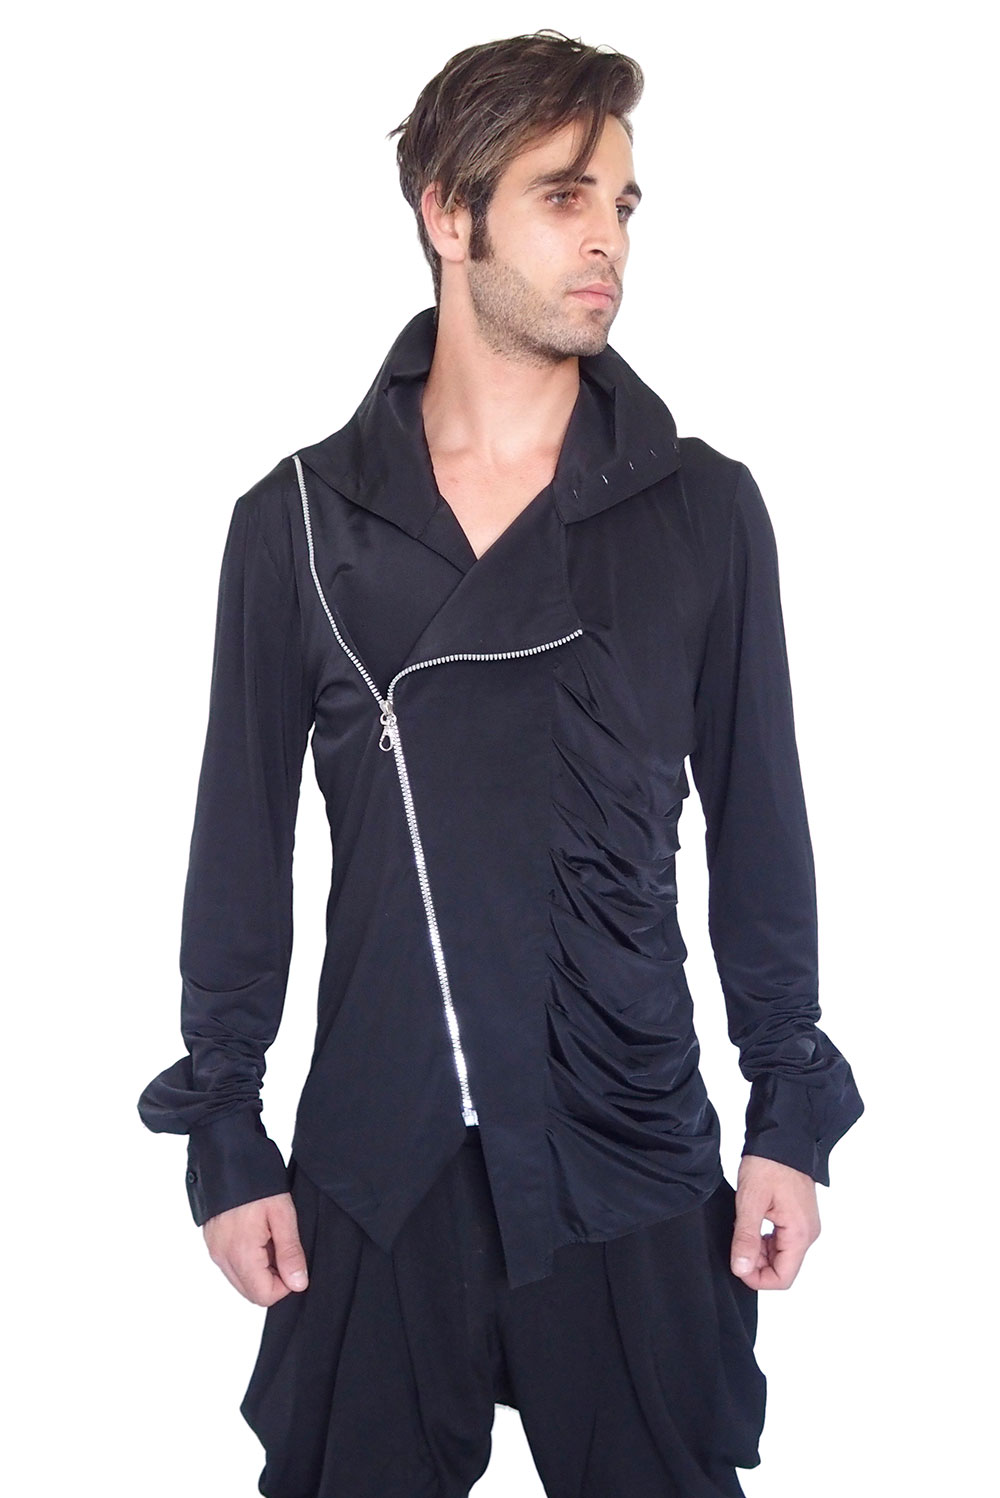 Mens Shirt Asymmetric With Zipper Unusual Hi Tek Hi Tek